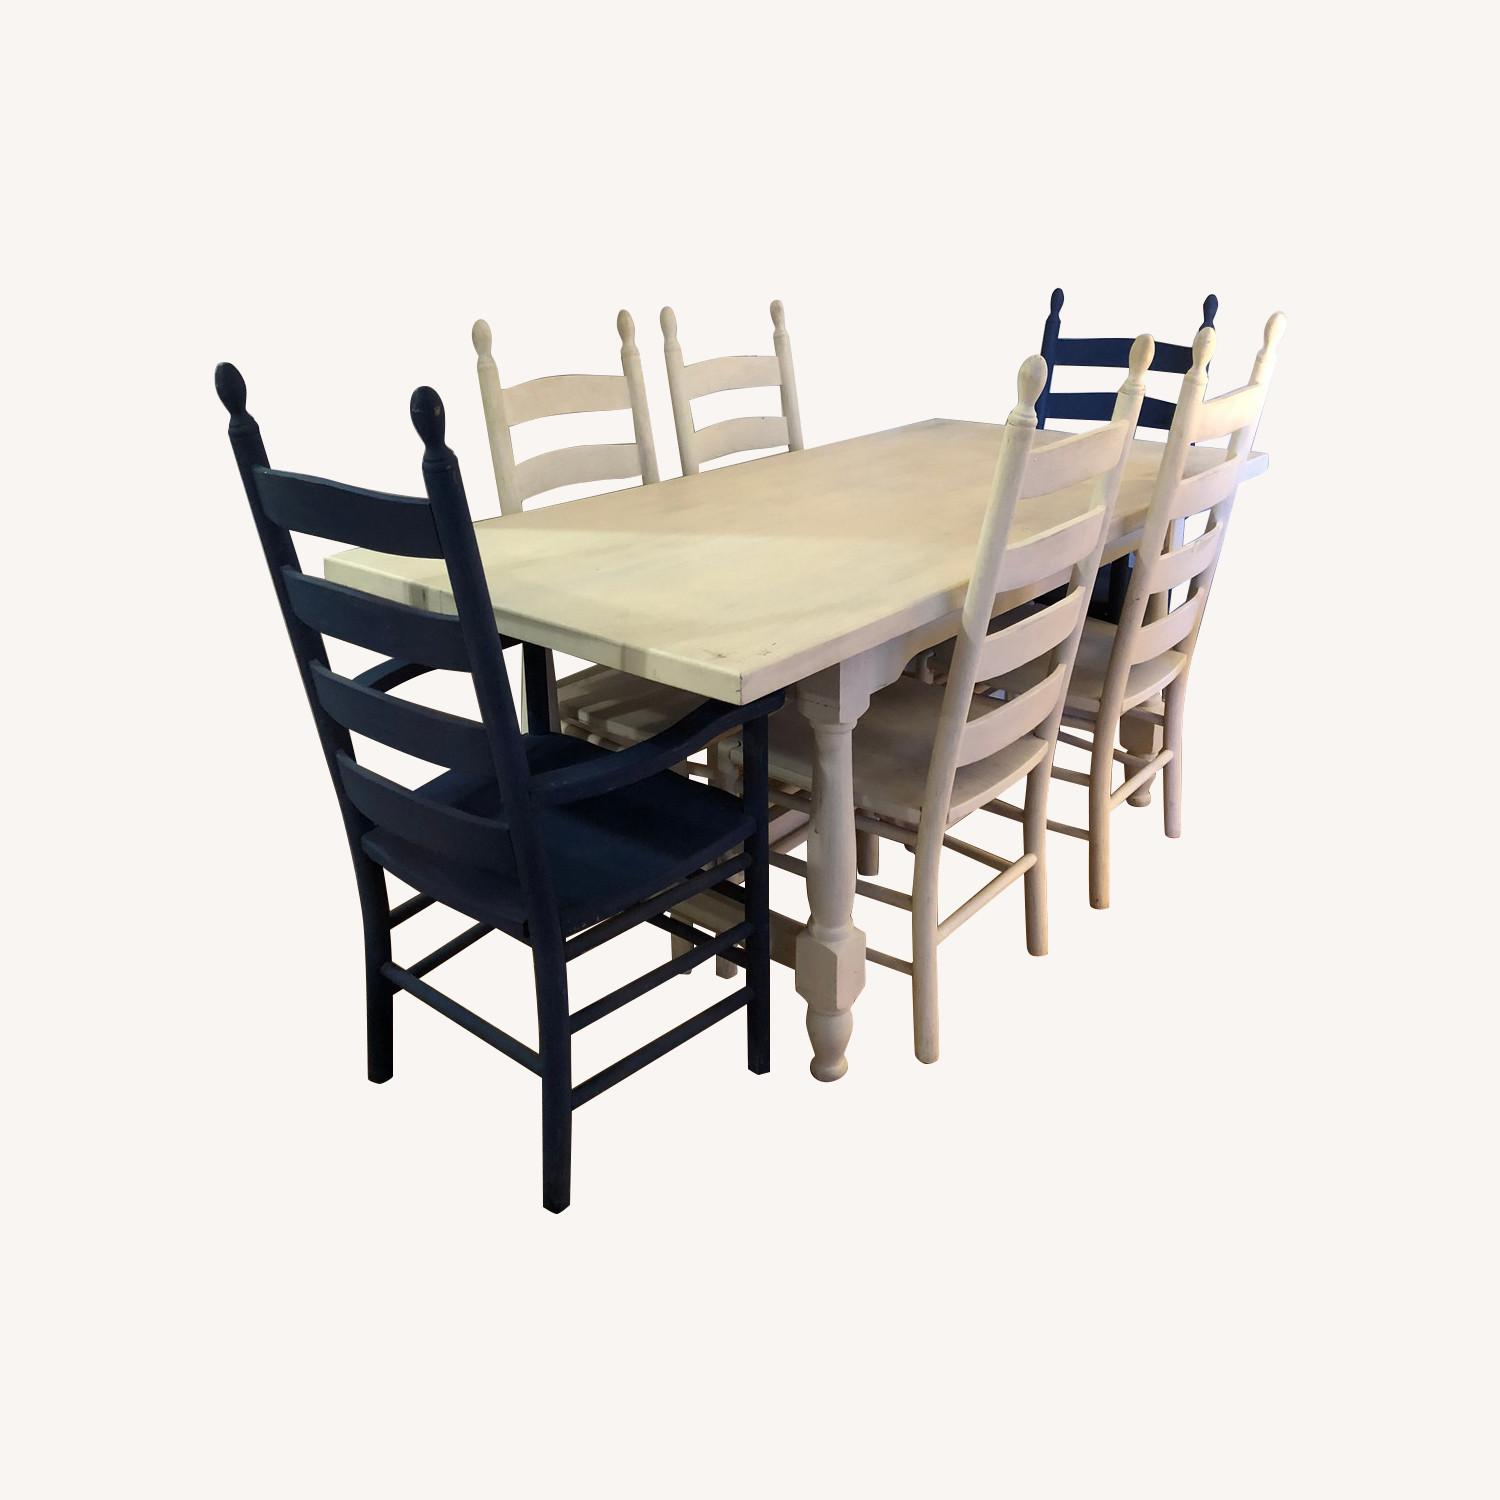 Solid Oak Trestle Dining Table with 6 Ladderback Chairs